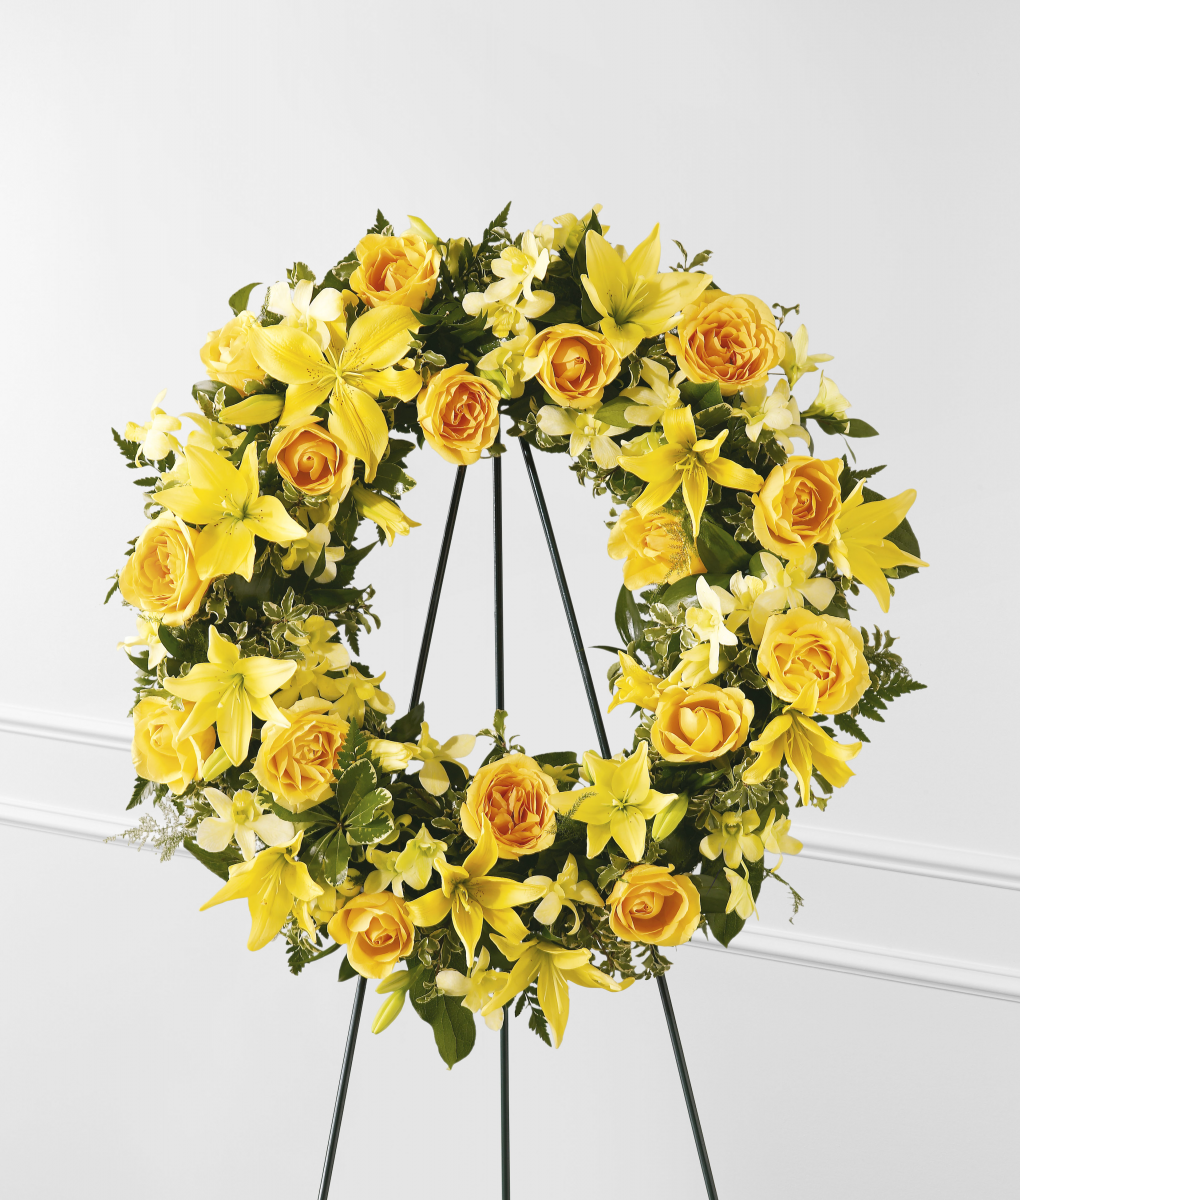 FTD® Ring of Friendship™ Wreath